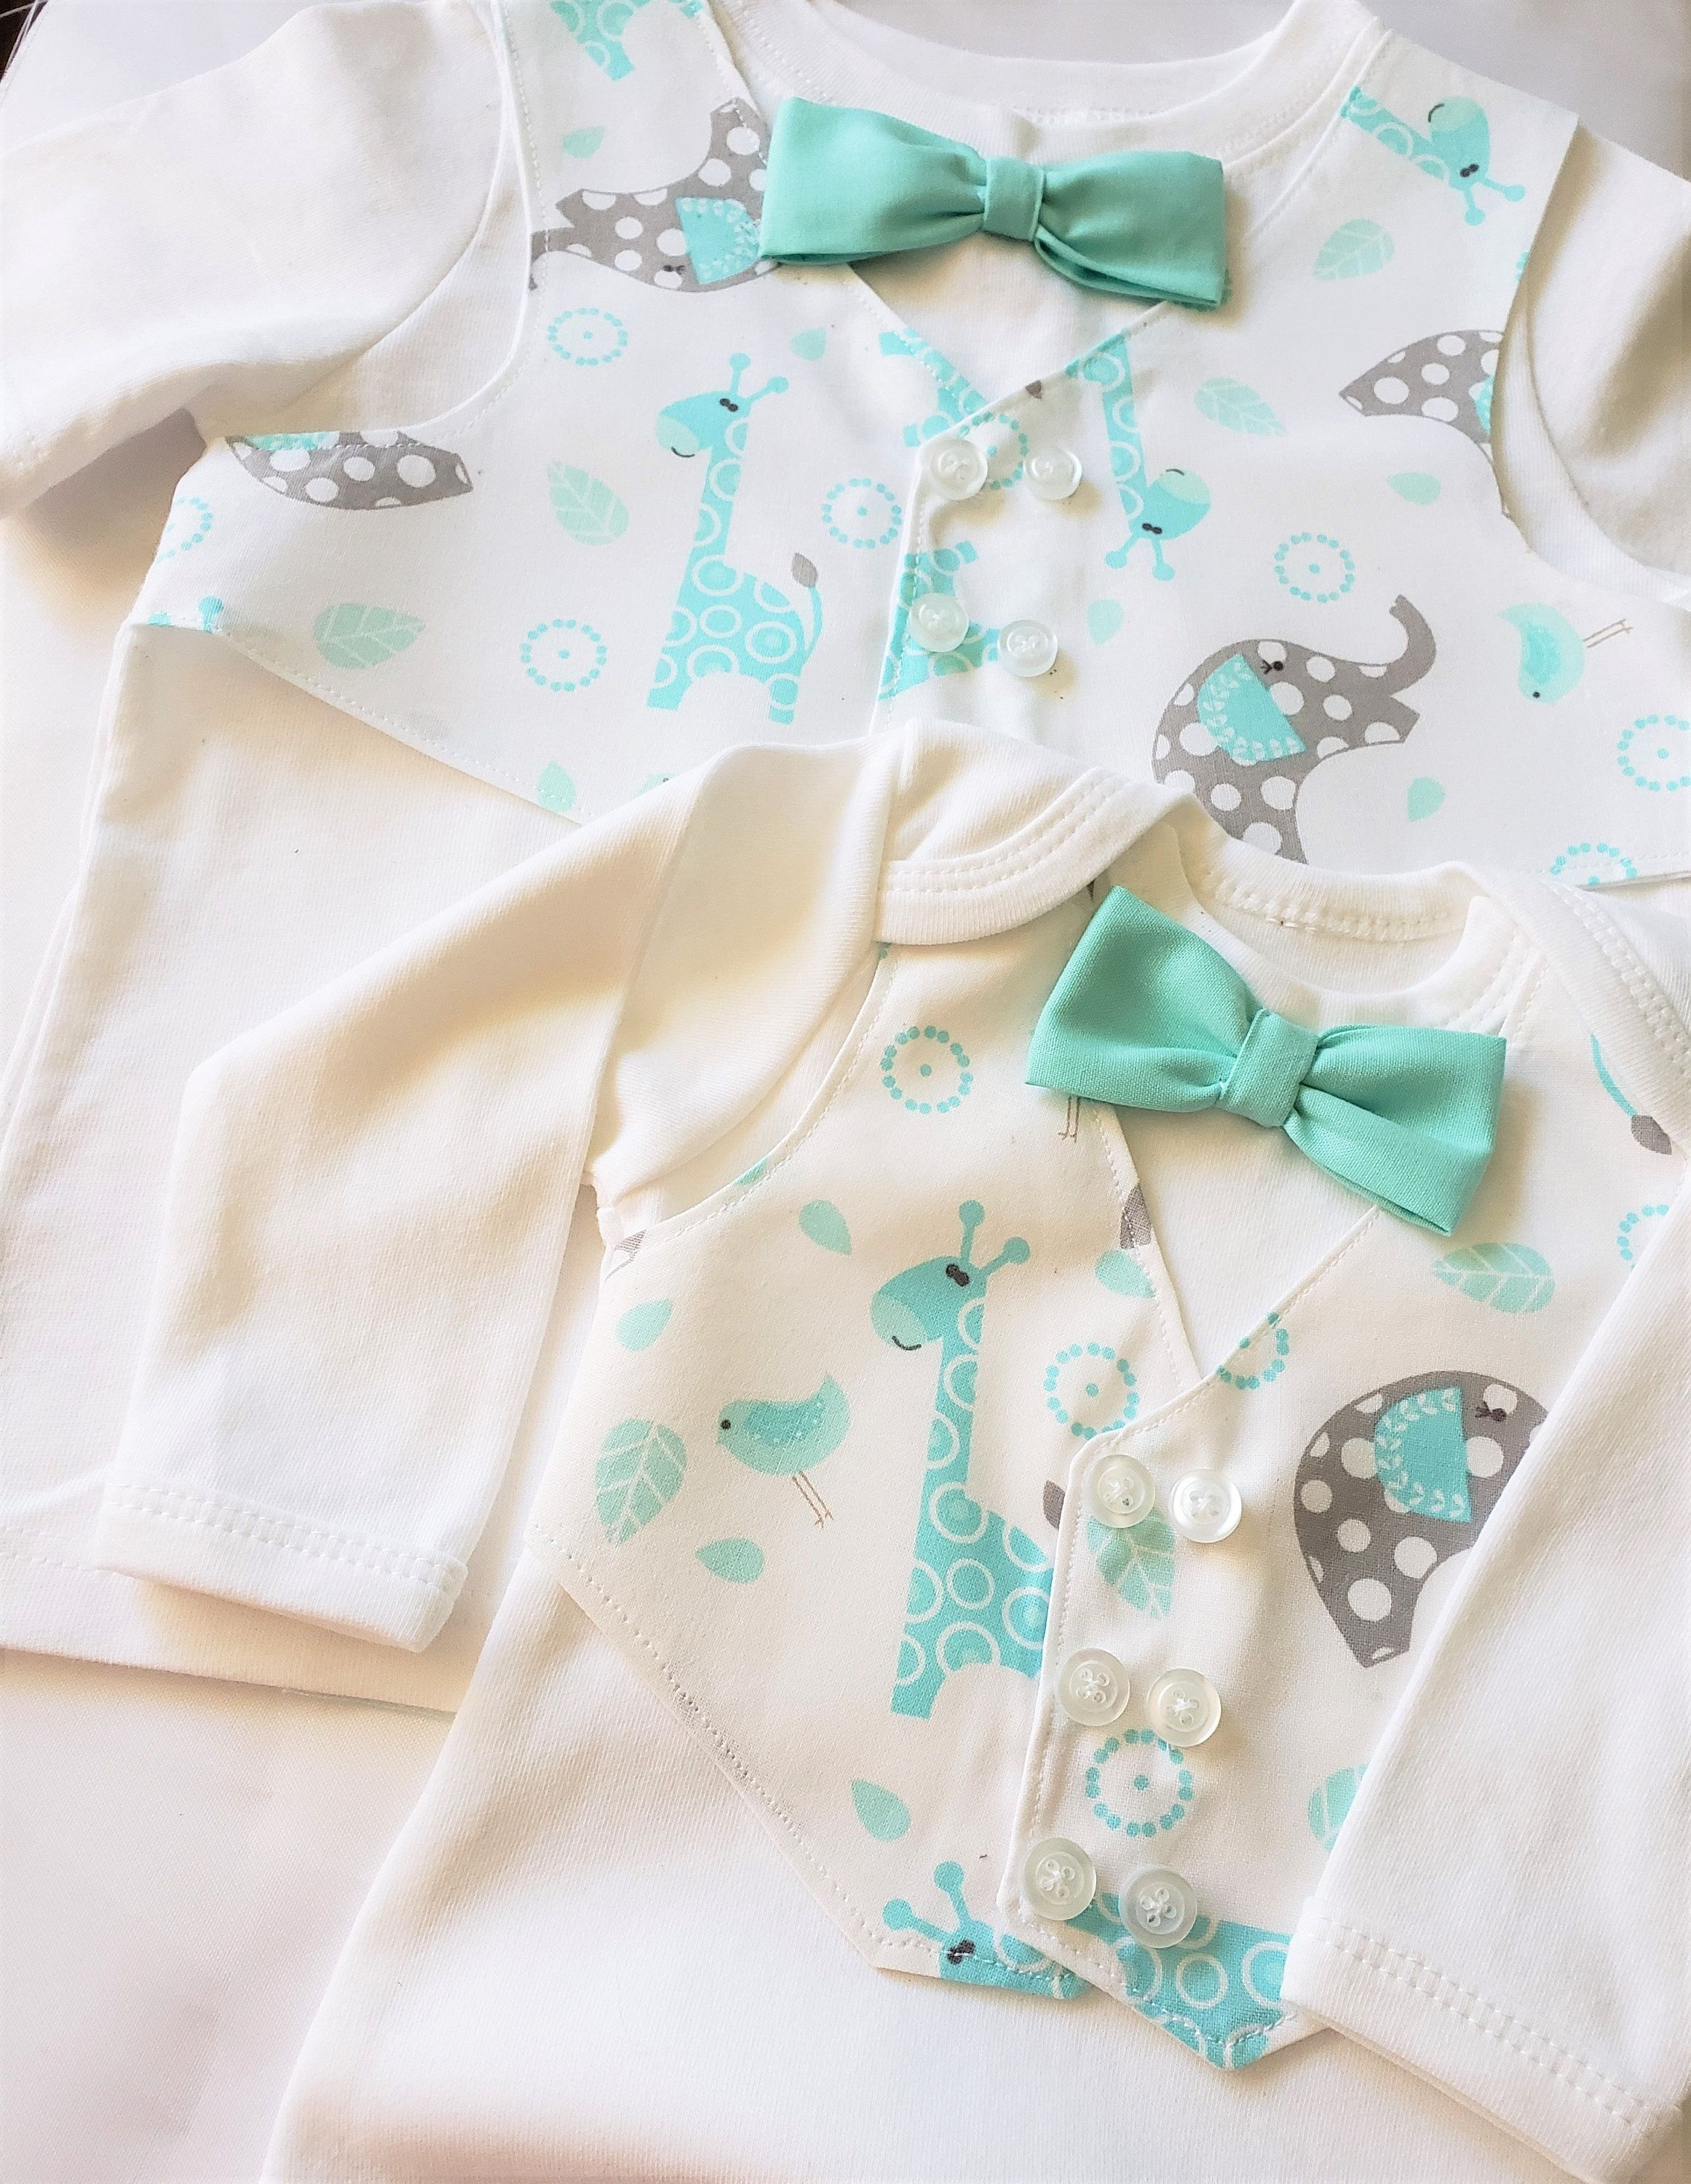 Stylish Animal Print Vest and Bow-tie Newborn Boy Coming Home Outfit